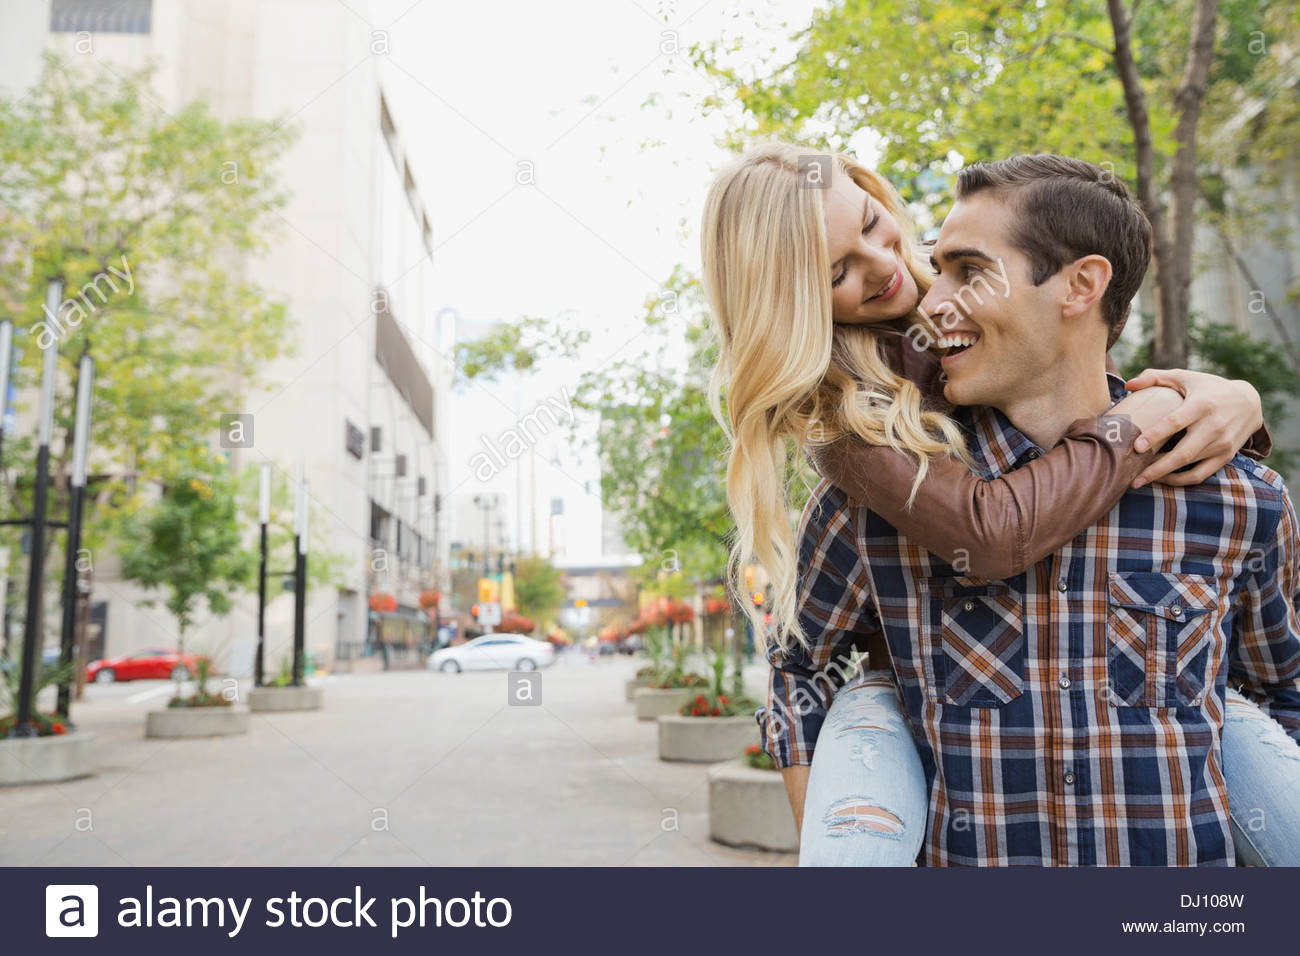 Playful couple walking on city street - Stock Image